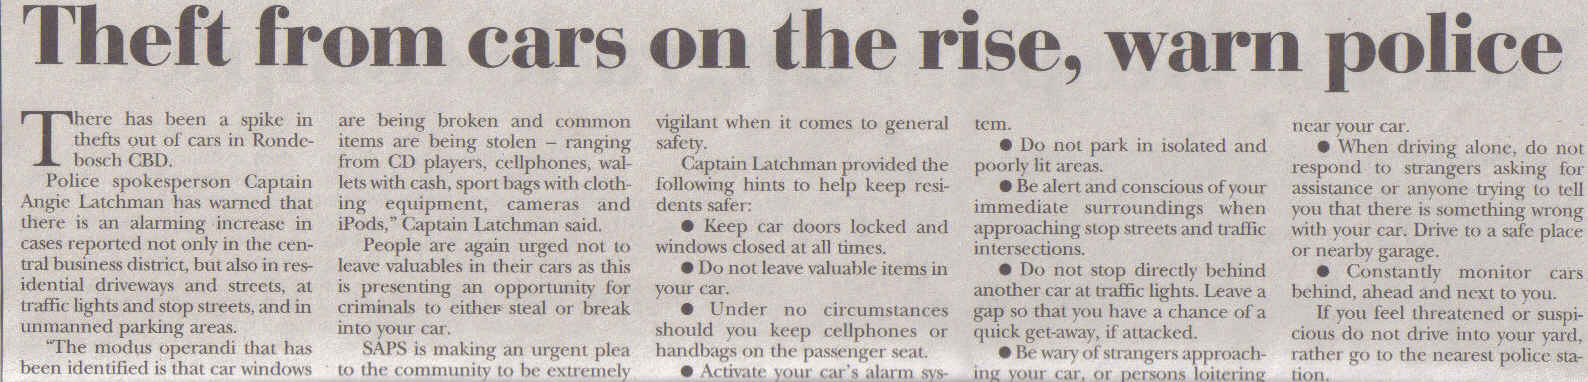 Theft from cars on the rise warn police ( Tatler, 30 January 2014)